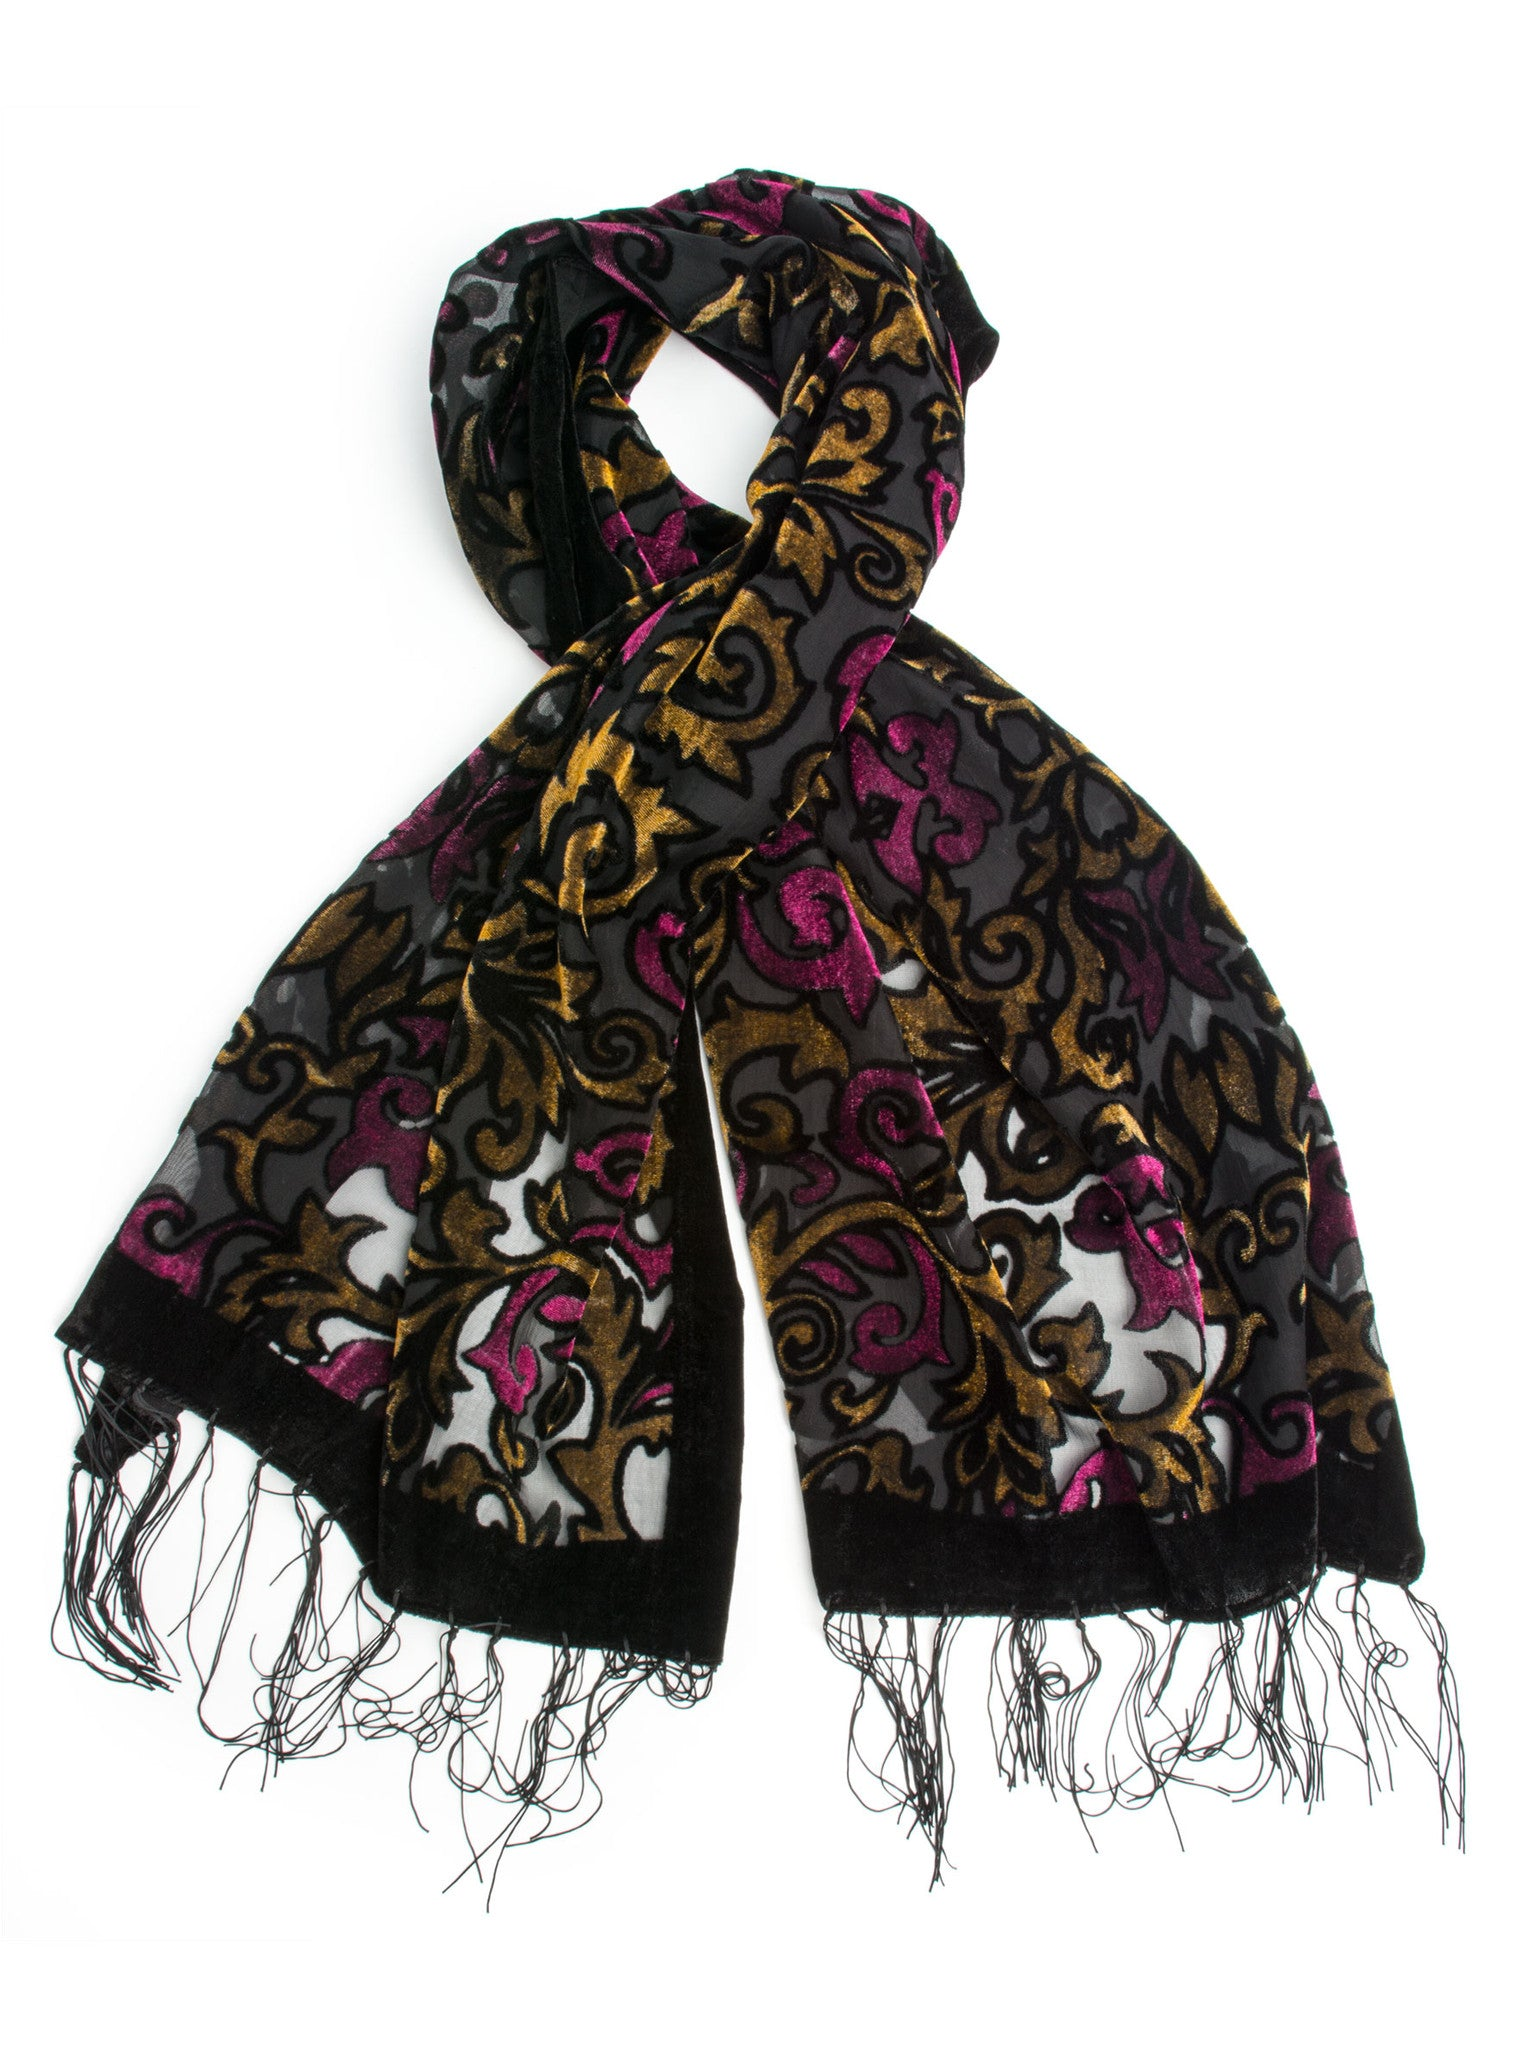 Scarves - Gia Scarf - Silk Brocade Print Velvet Burnout Scarf with Fringe Ends -() Bohomonde  - 3